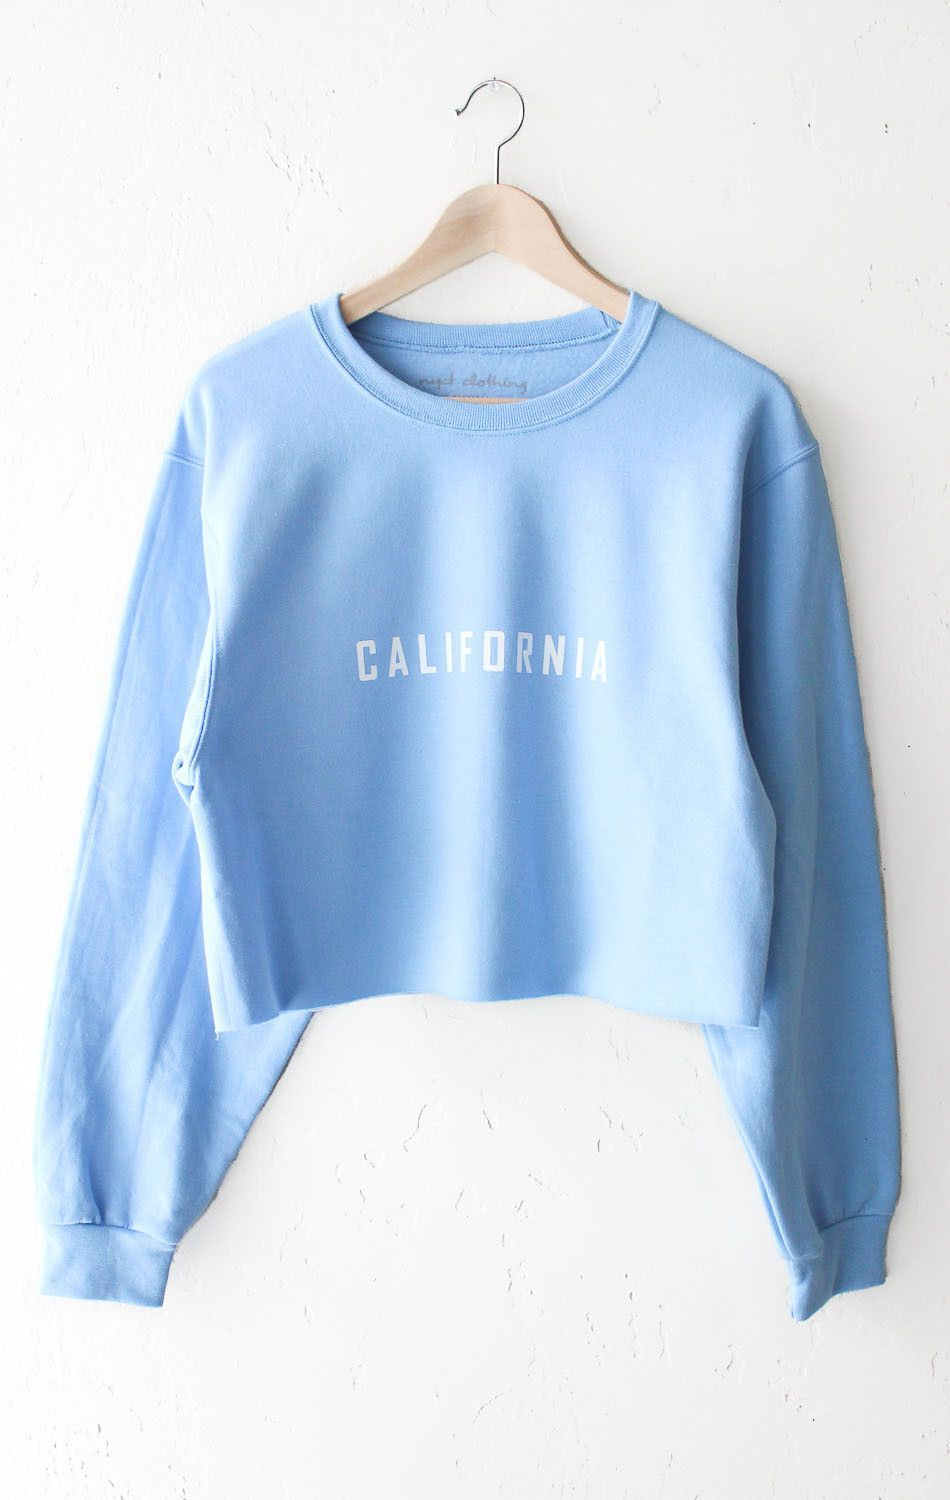 e15b19d56ea1a8 Description Details   California  cropped sweater in light blue. Brand   NYCT Clothing. Unisex